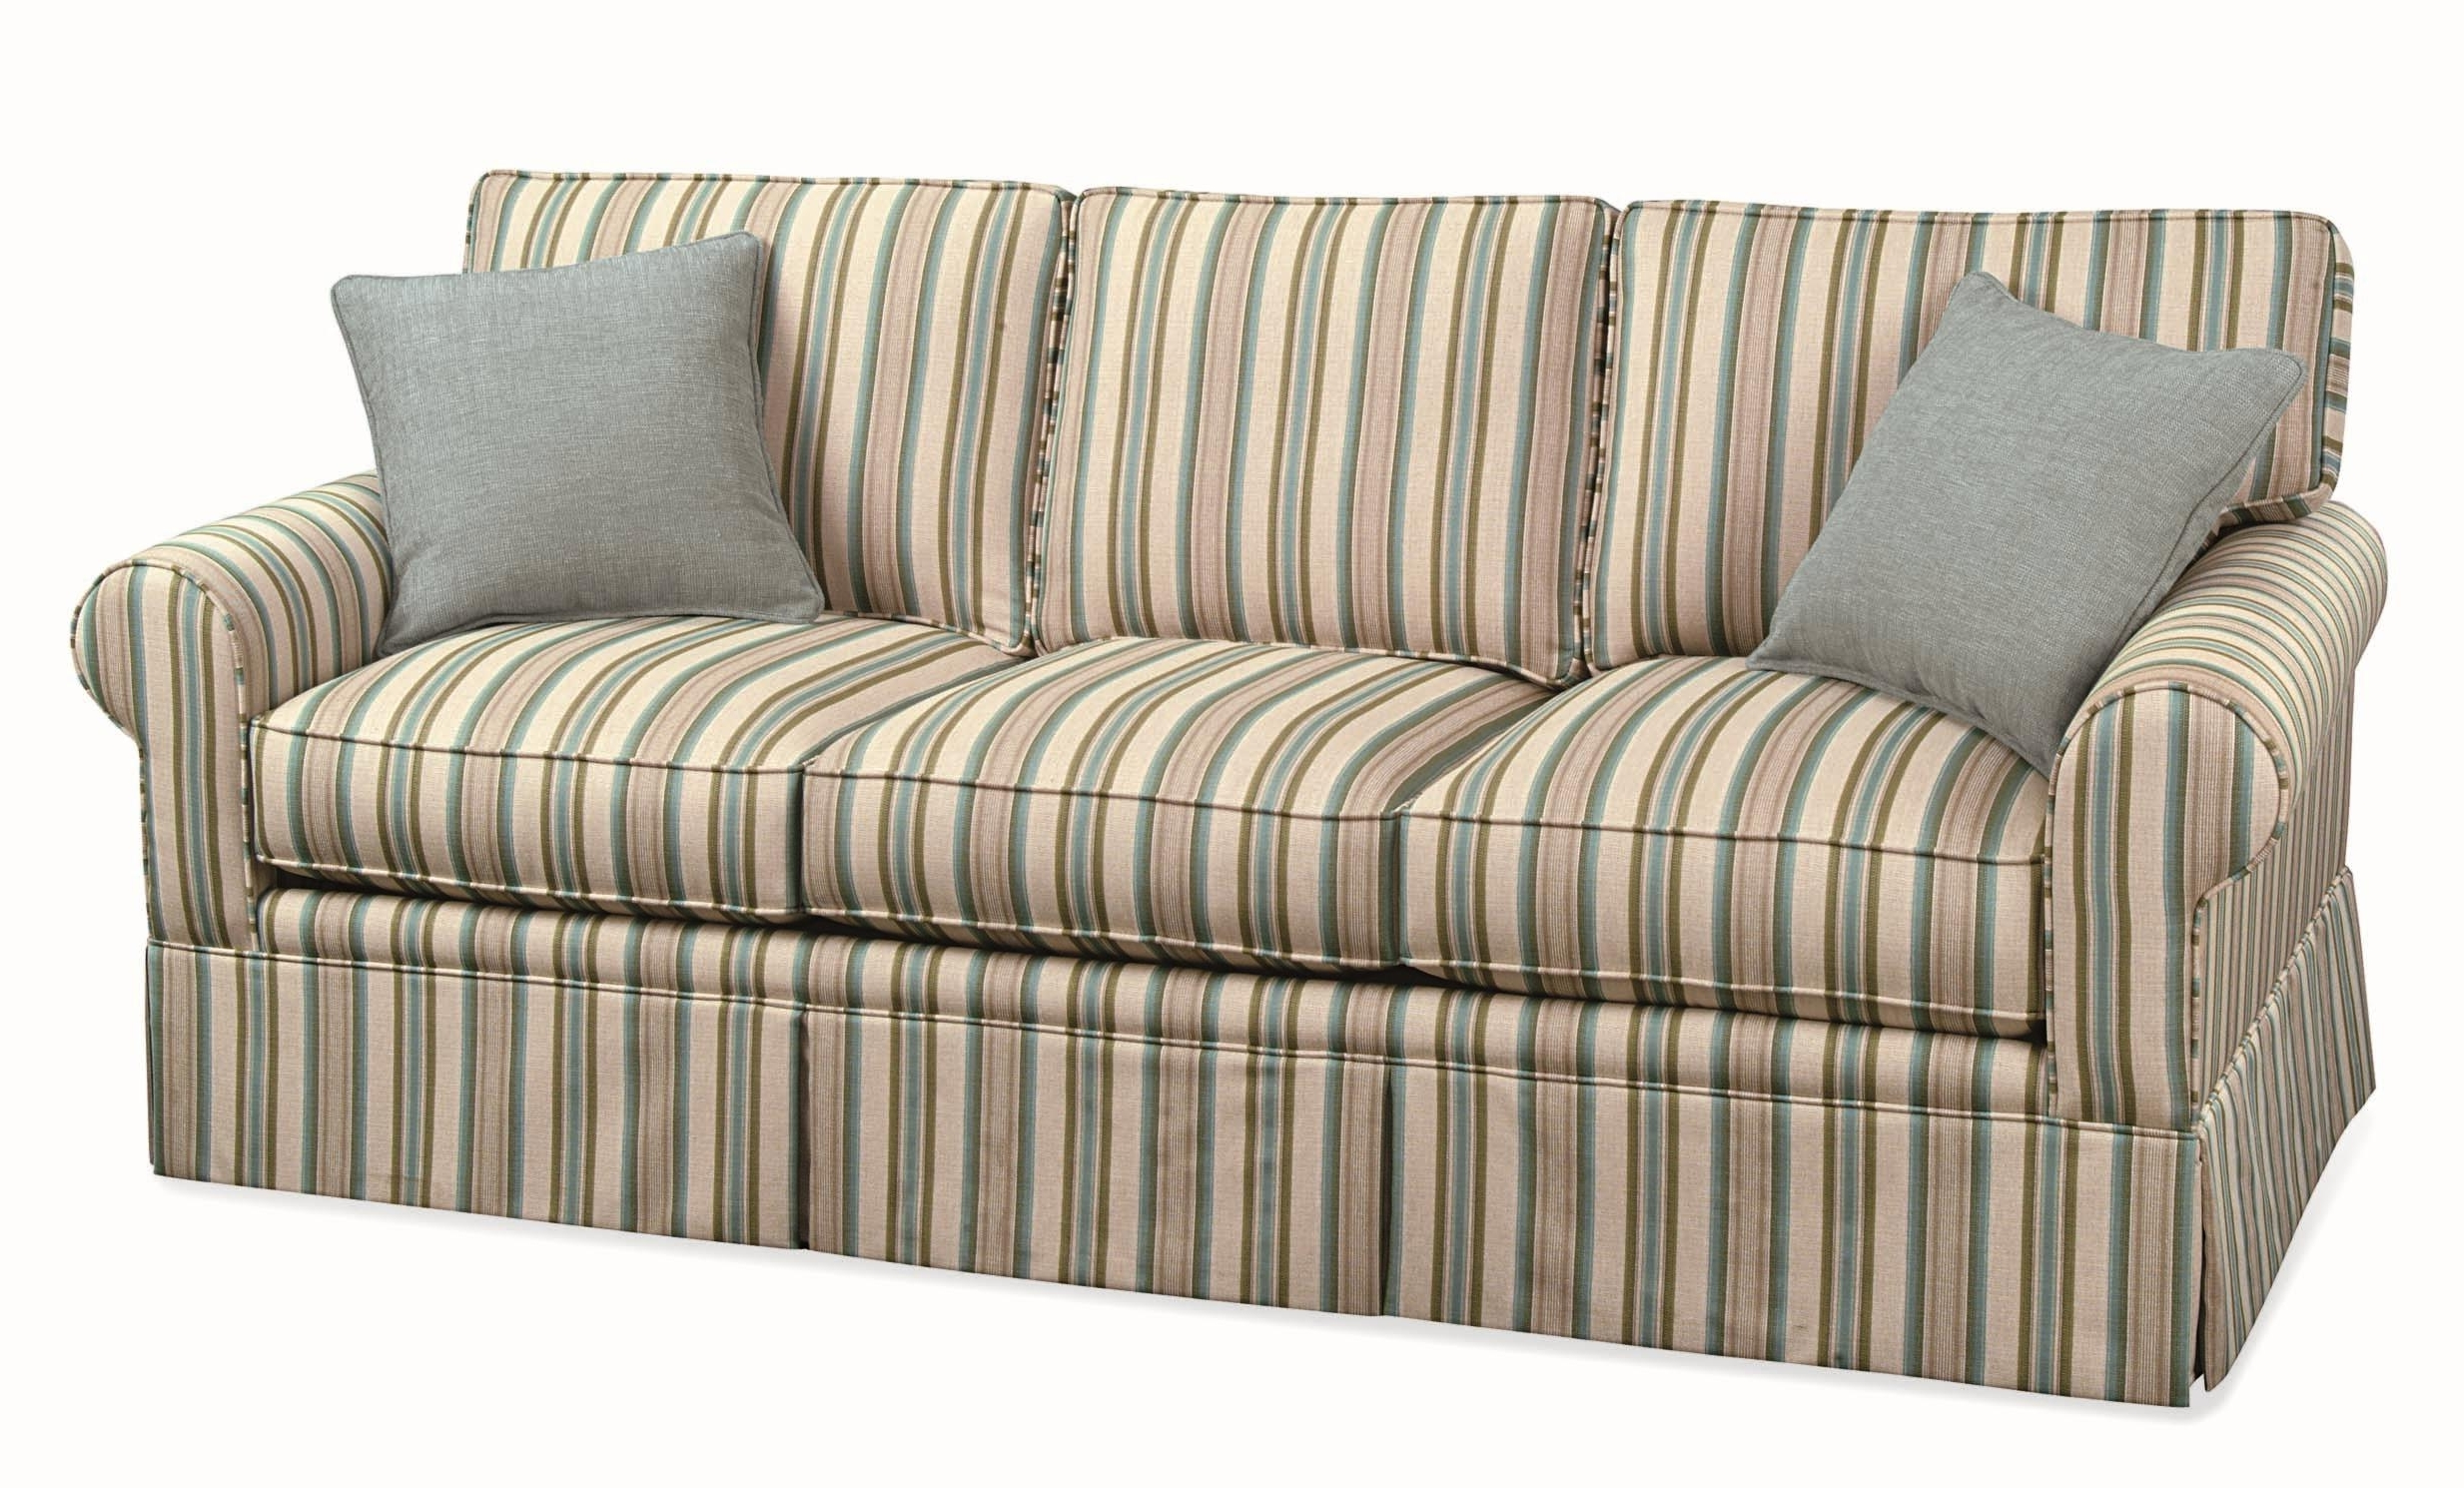 Best And Newest Braxton Culler Benton Casual Three Seater Sofa With Rolled Arms Regarding Braxton Sofas (View 7 of 15)